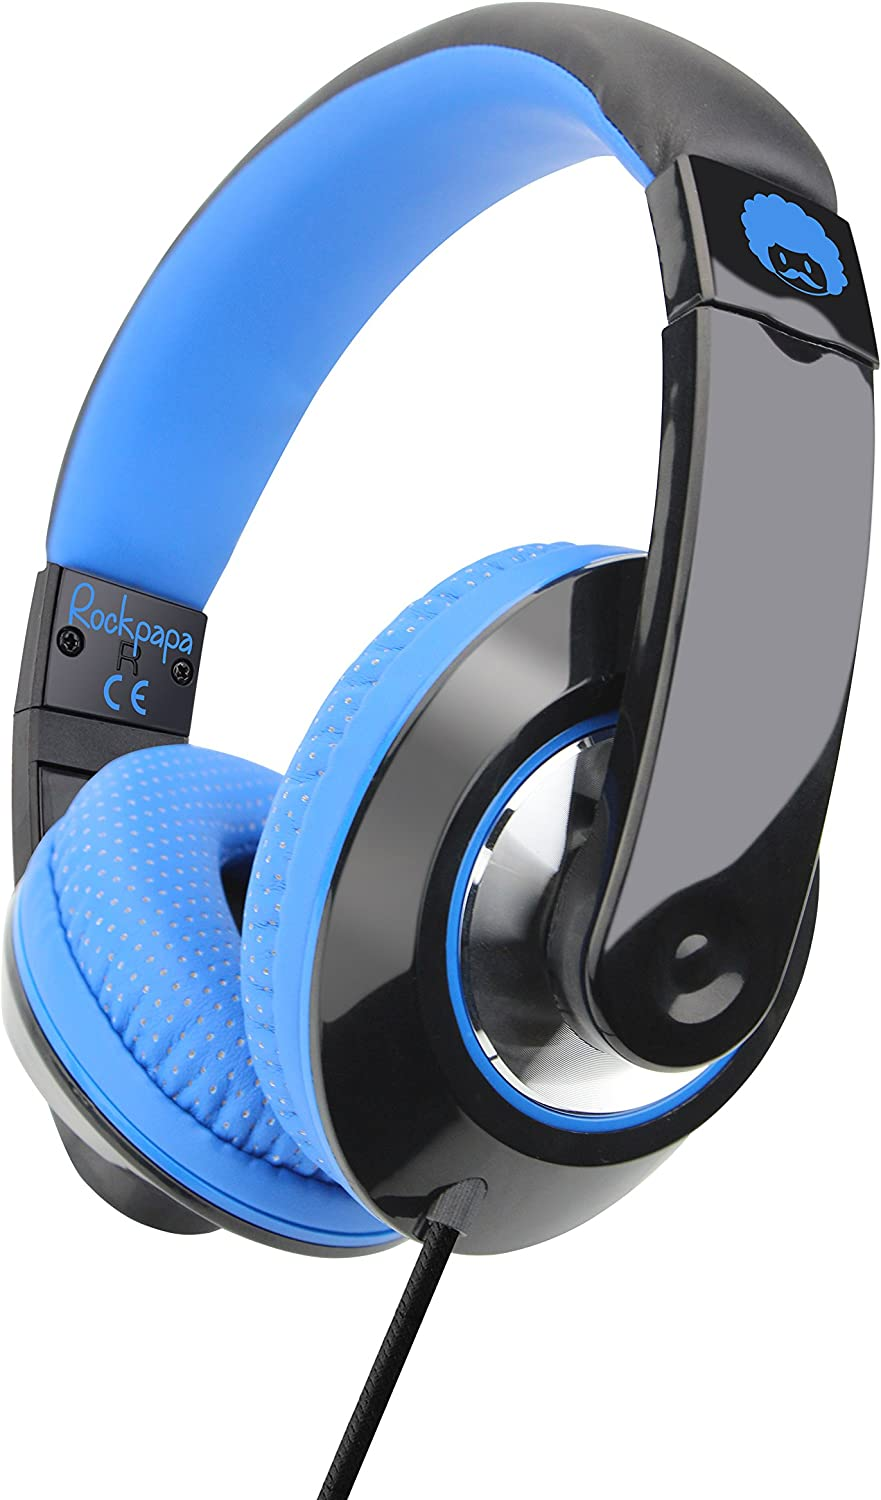 Rockpapa Comfort+ Adjustable Over Ear Headphones Earphones with Microphone in-line Volume for Adults Kids Childs Teens, Smartphones Laptops DVD MP3/4 Surface iPhone iPod iPad MacBook Black Blue